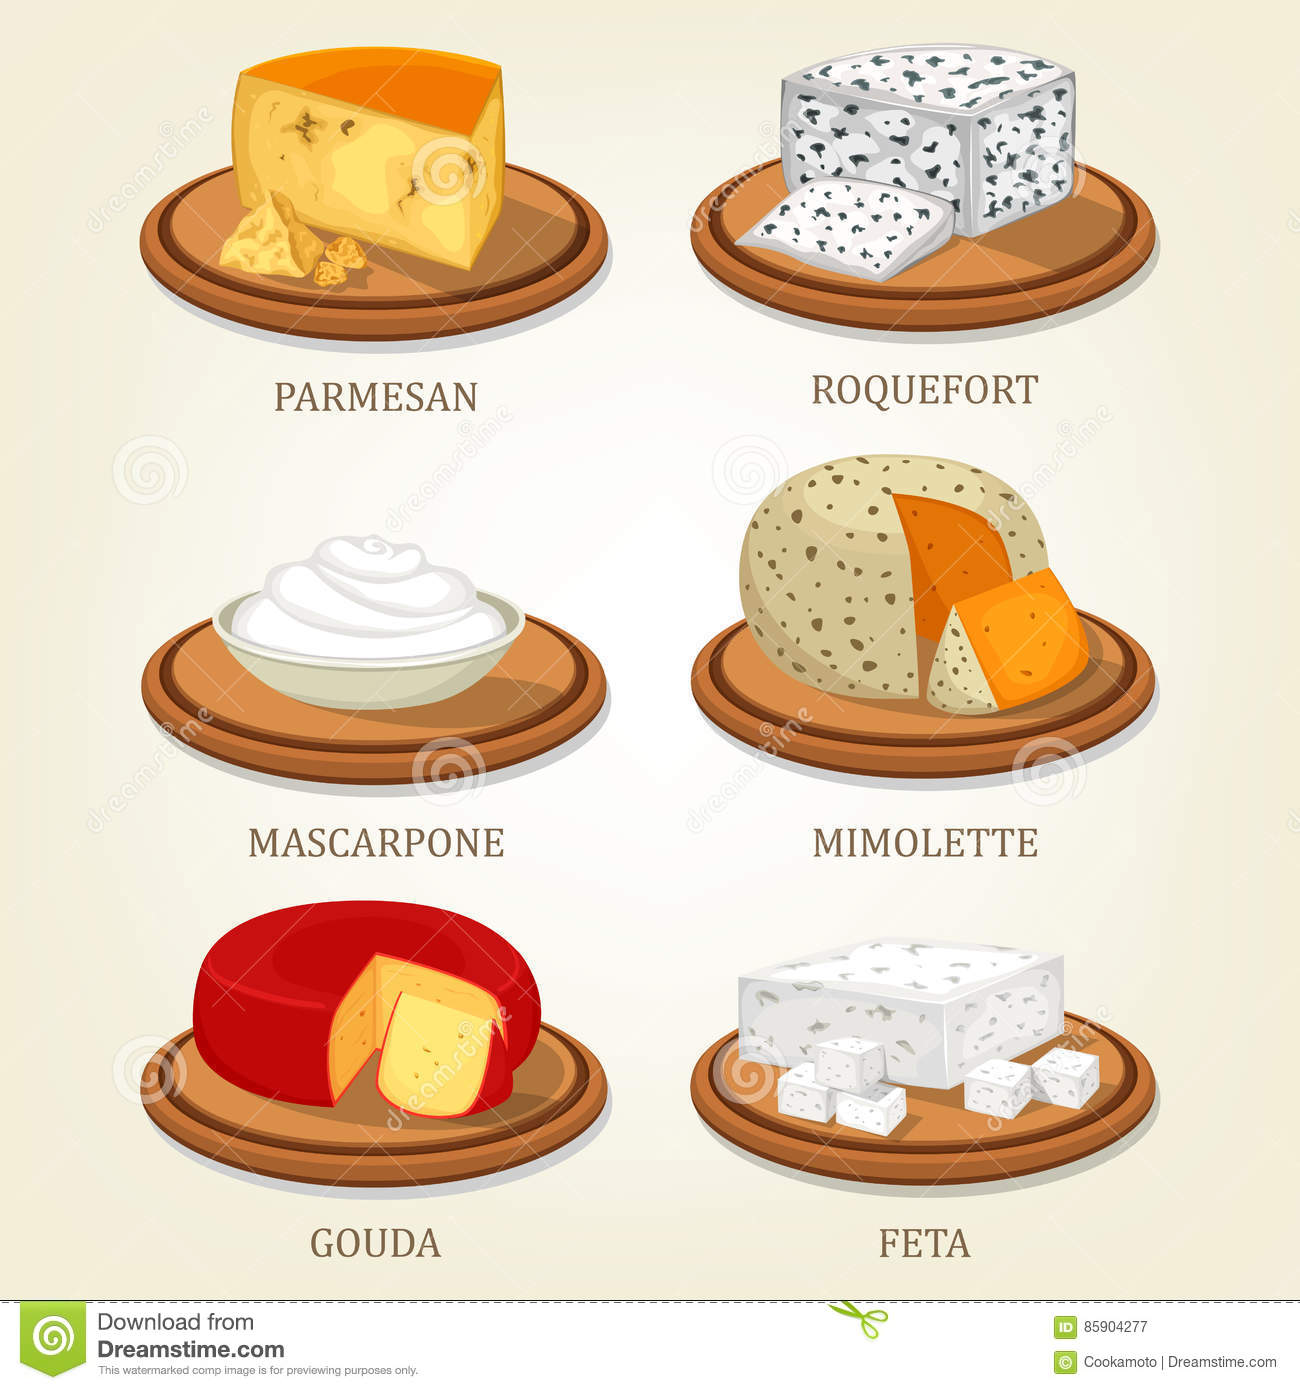 Roquefort And Parmesan, Mimolette And Gouda, Feta Stock Vector.